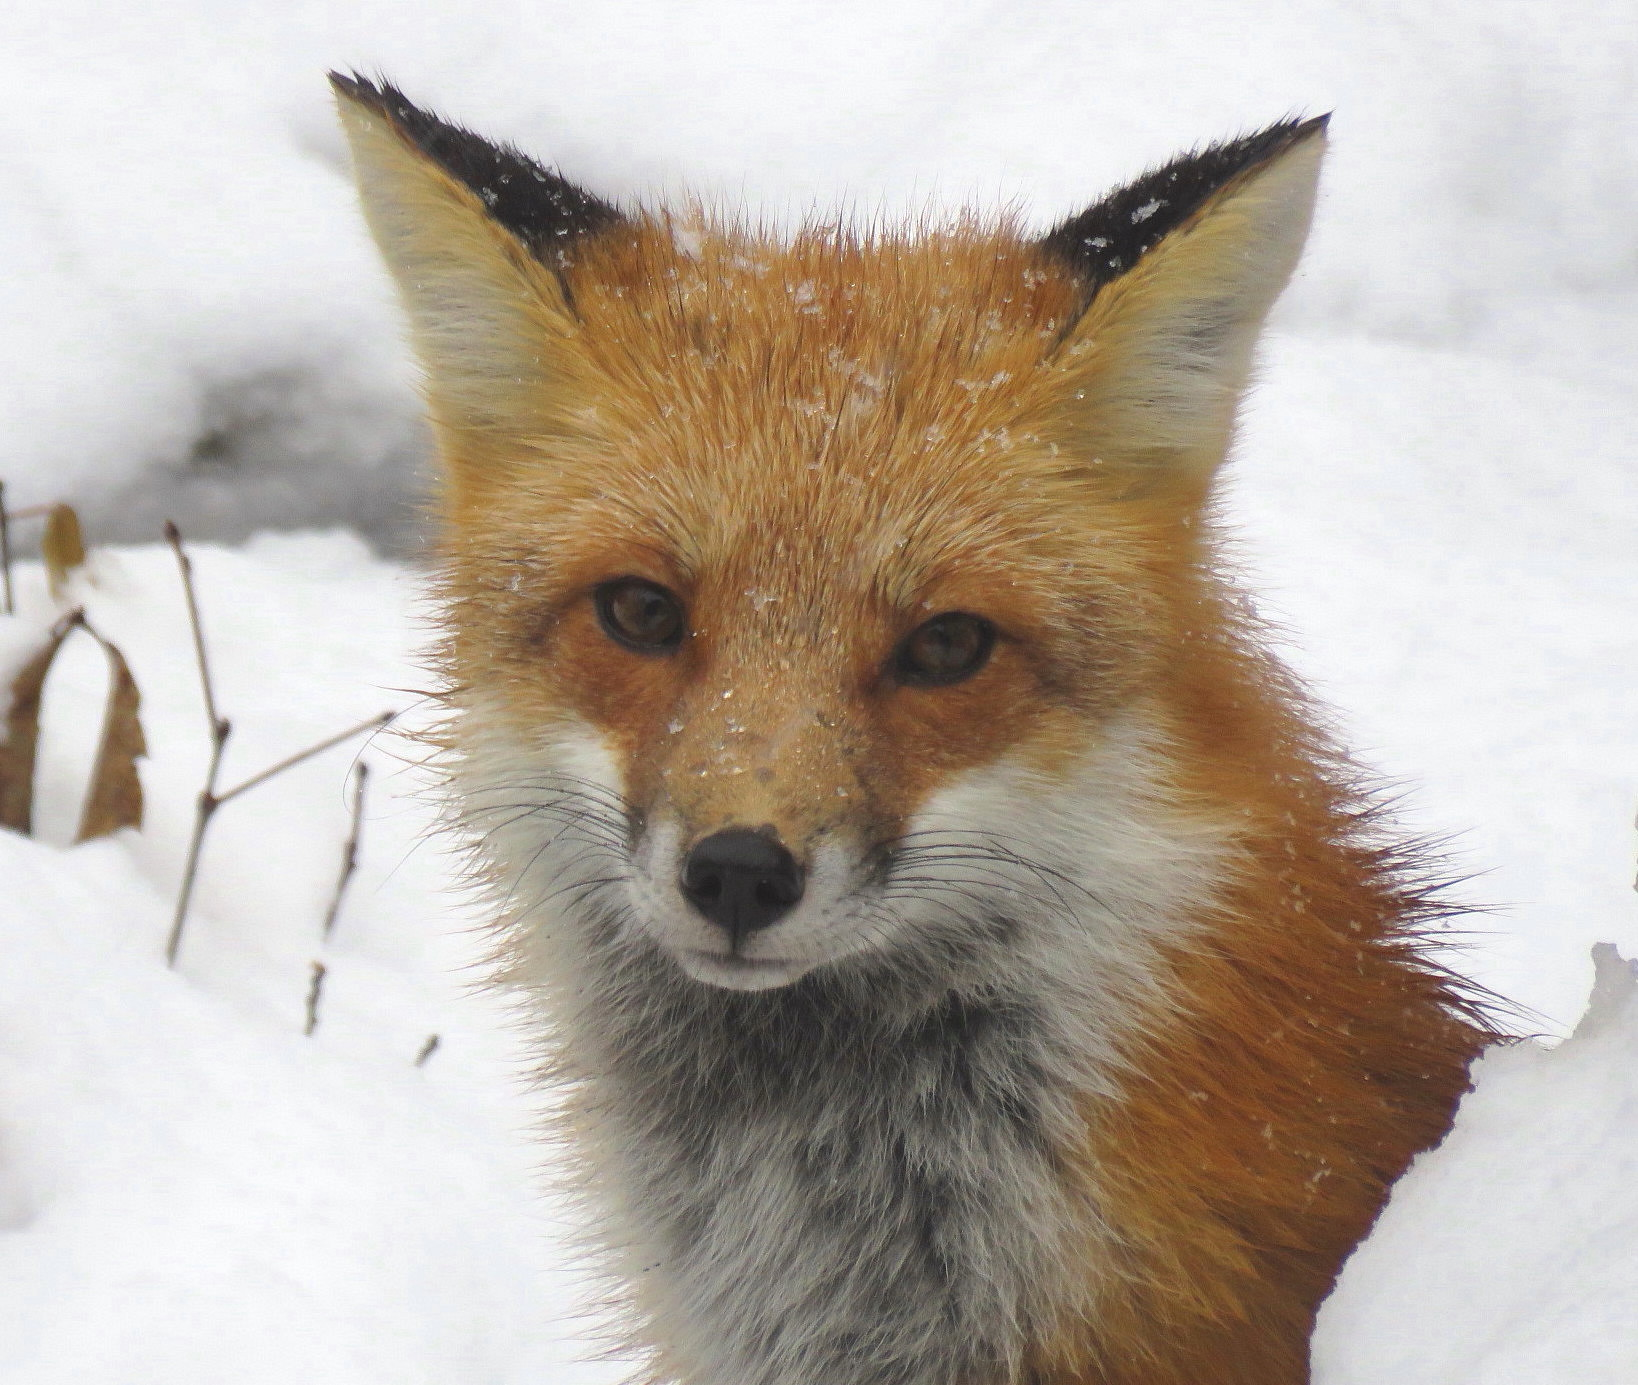 SCORES & OUTDOORS: Red fox population growing in our area ...